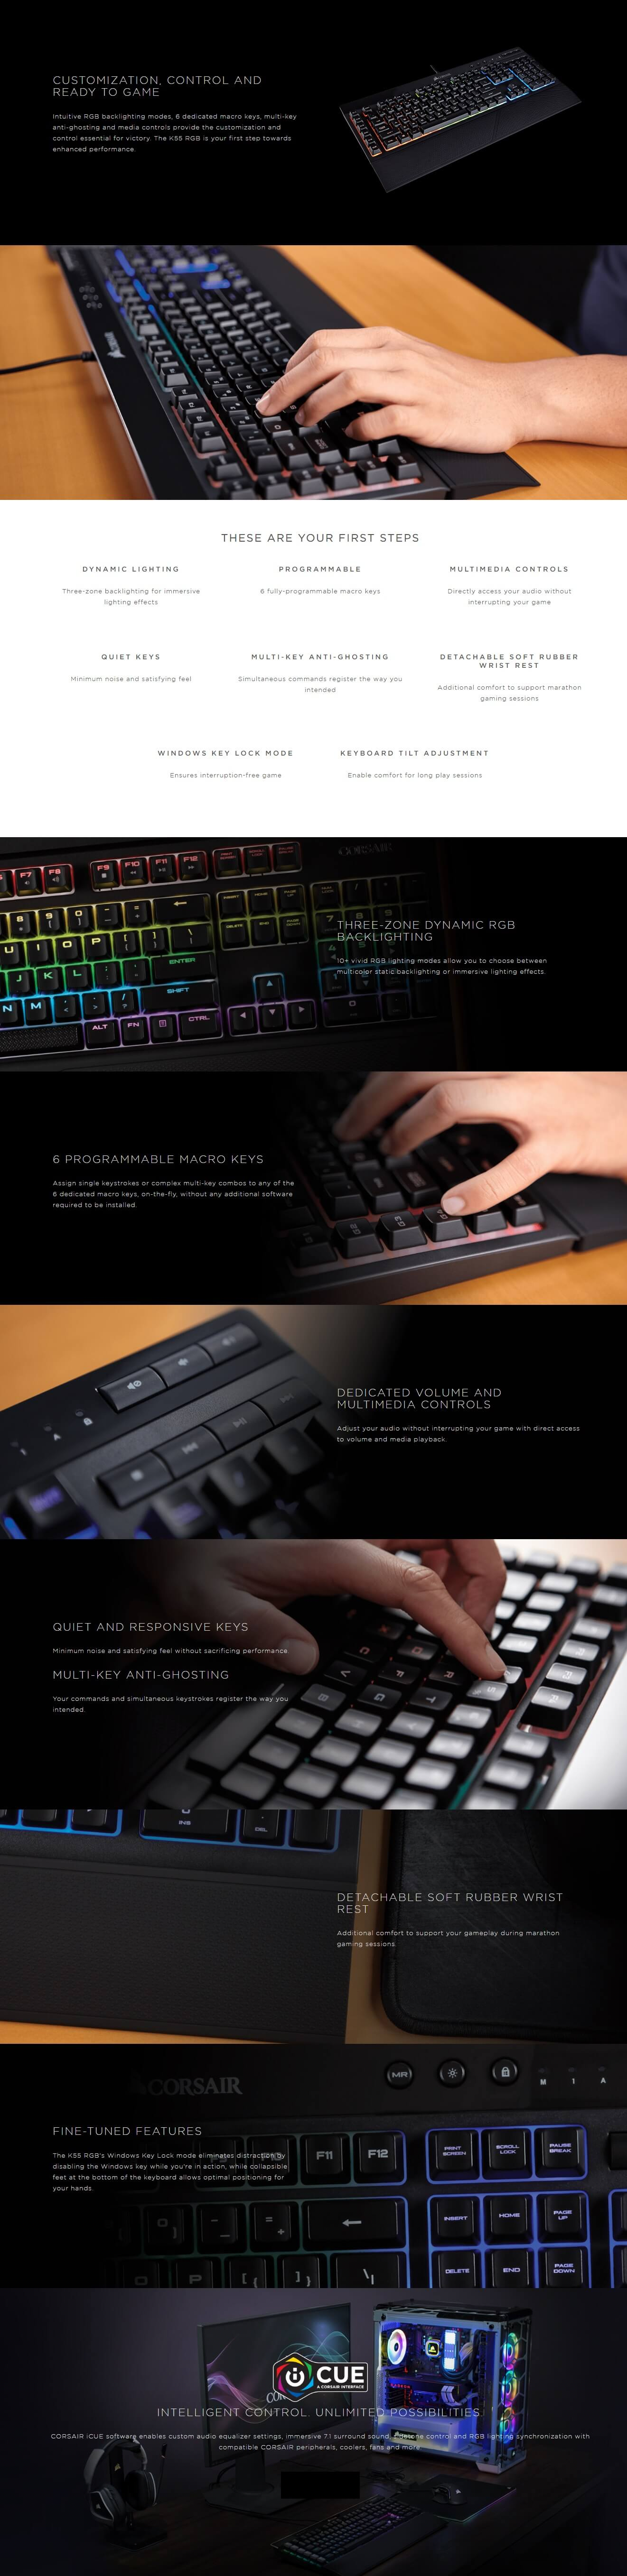 Corsair K55 Rgb How To Change Color